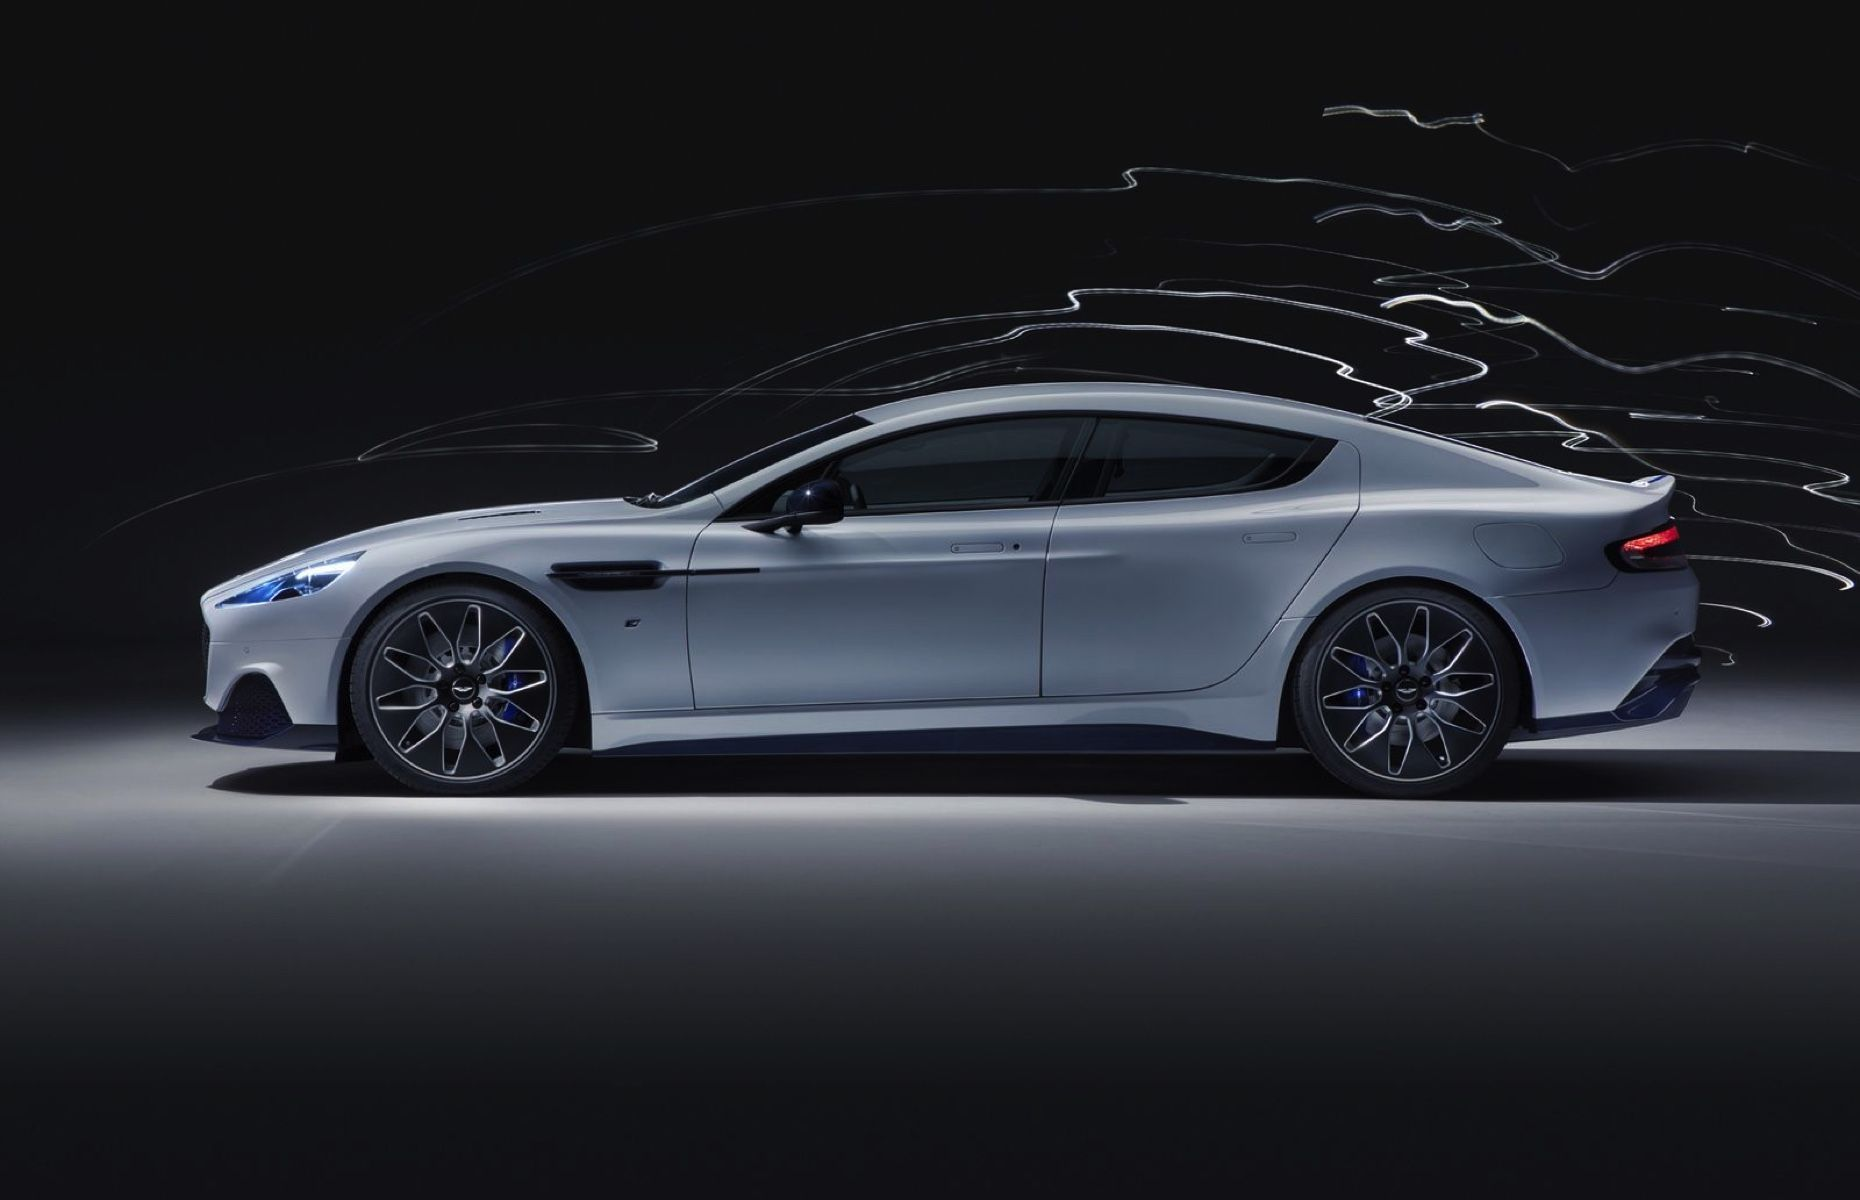 Aston Martin (finally) unveiled its first all-electric car, the Rapide E